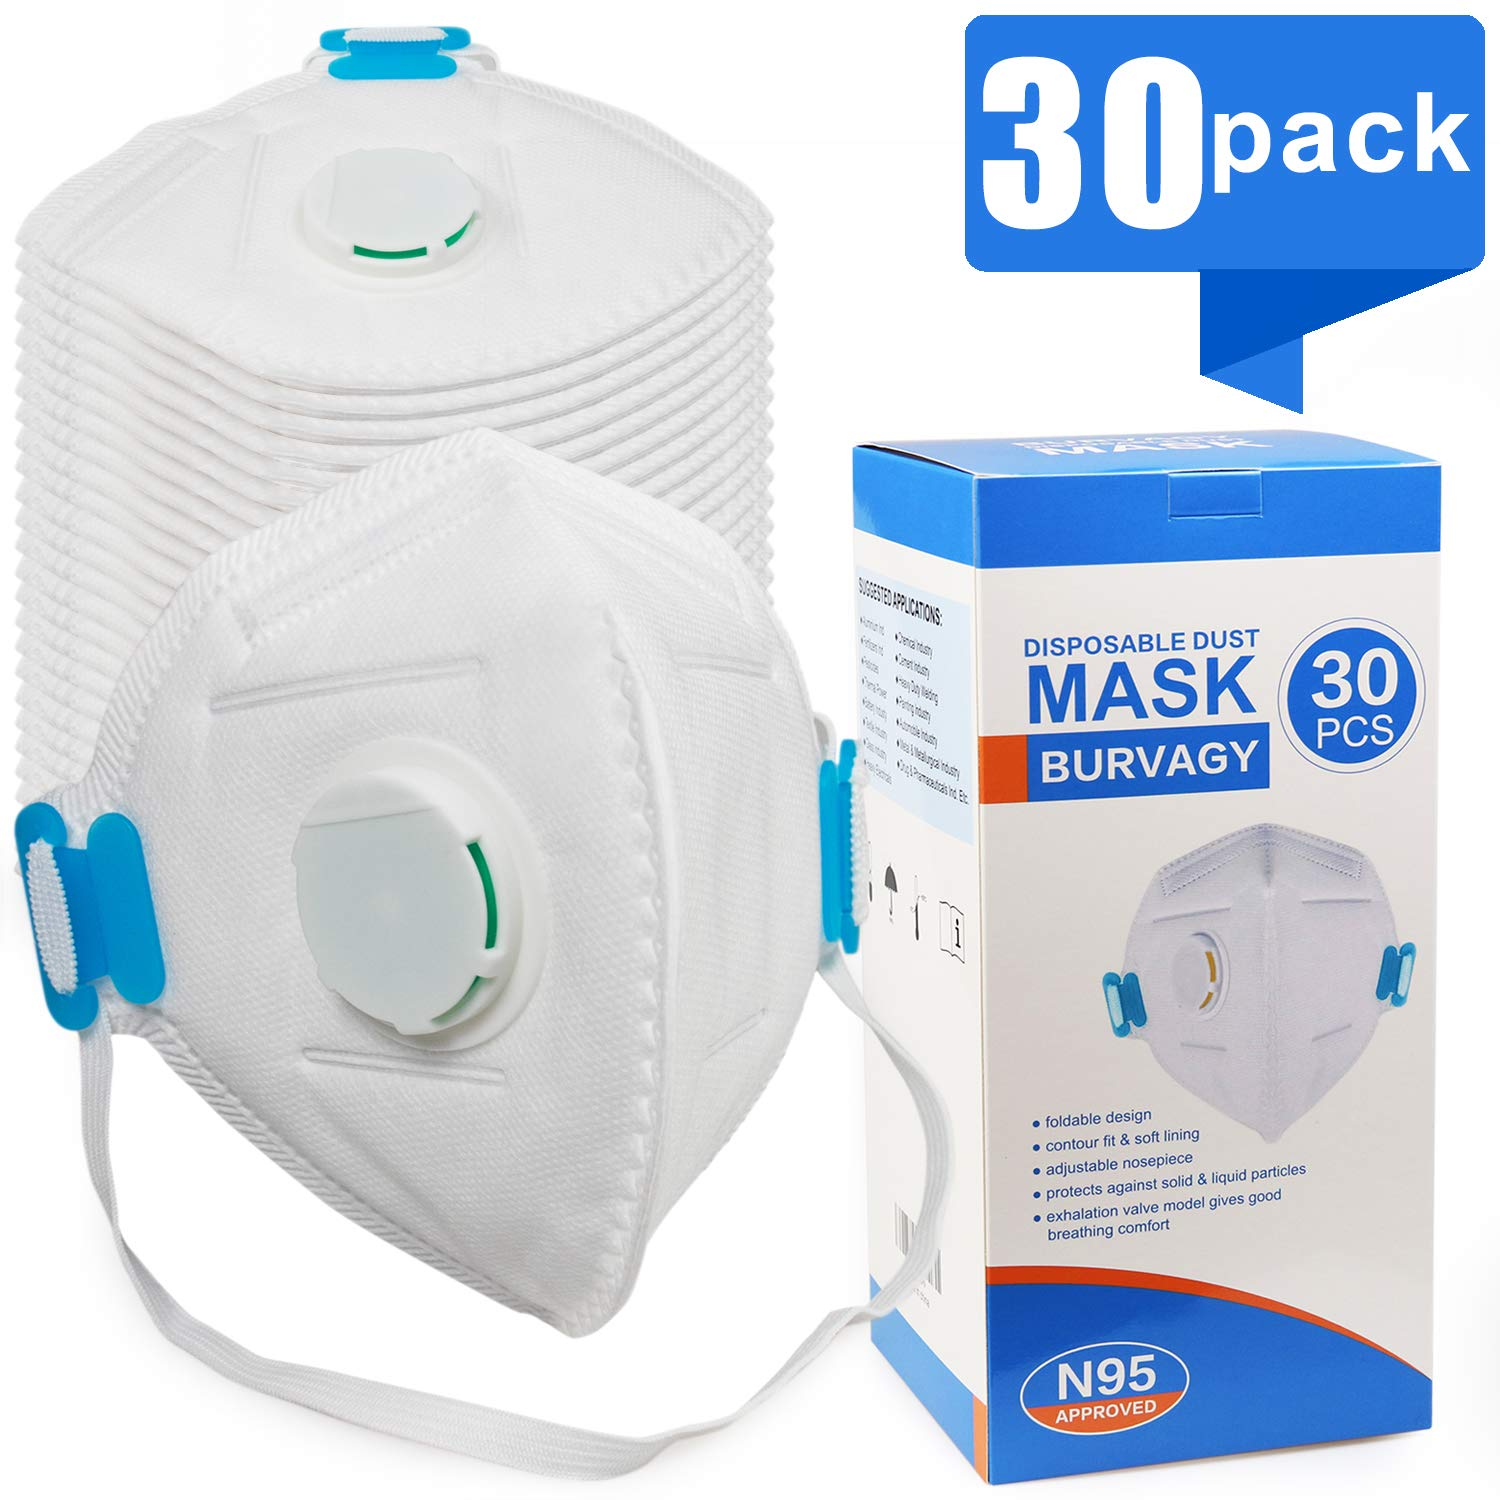 Disposable Dust Mask with Exhalation Valve (30 pack), Personal Protective Equipment - N95 Particulate Respirators for Construction, Home, DIY Projects by BURVAGY